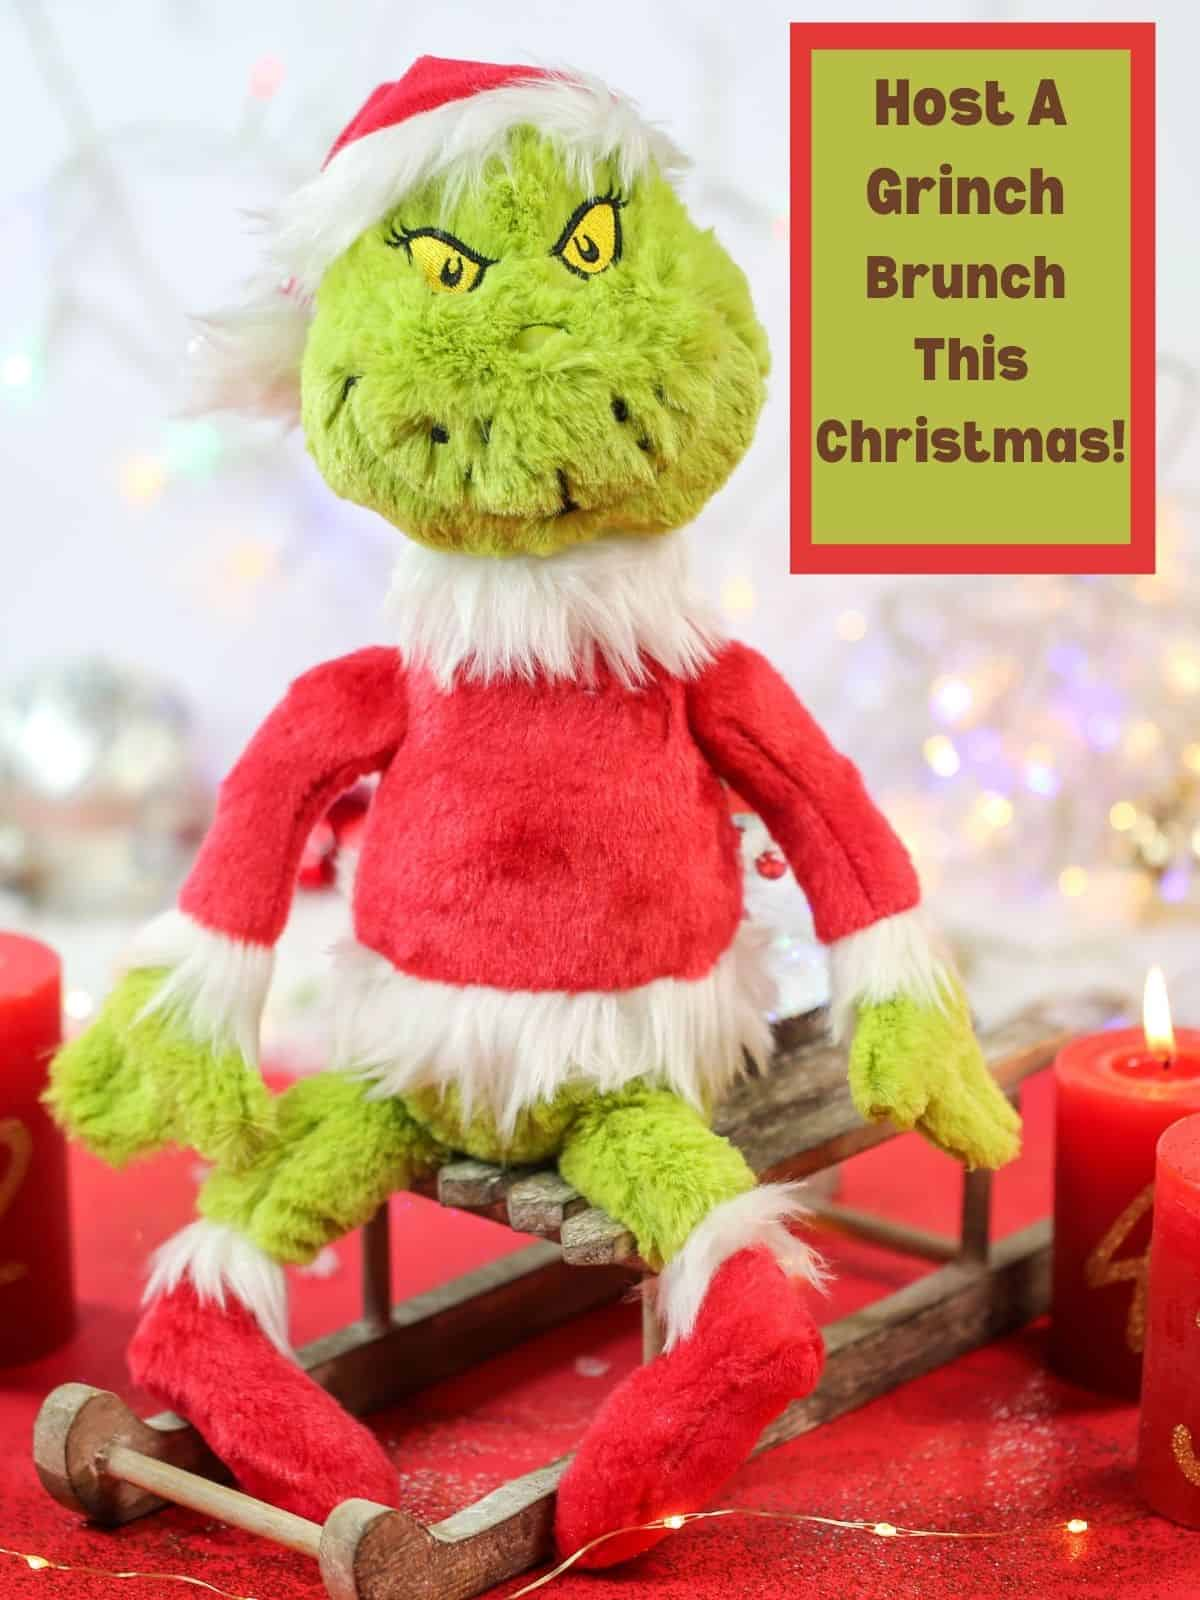 Host A Grinch Brunch This Christmas with a green grinch picture